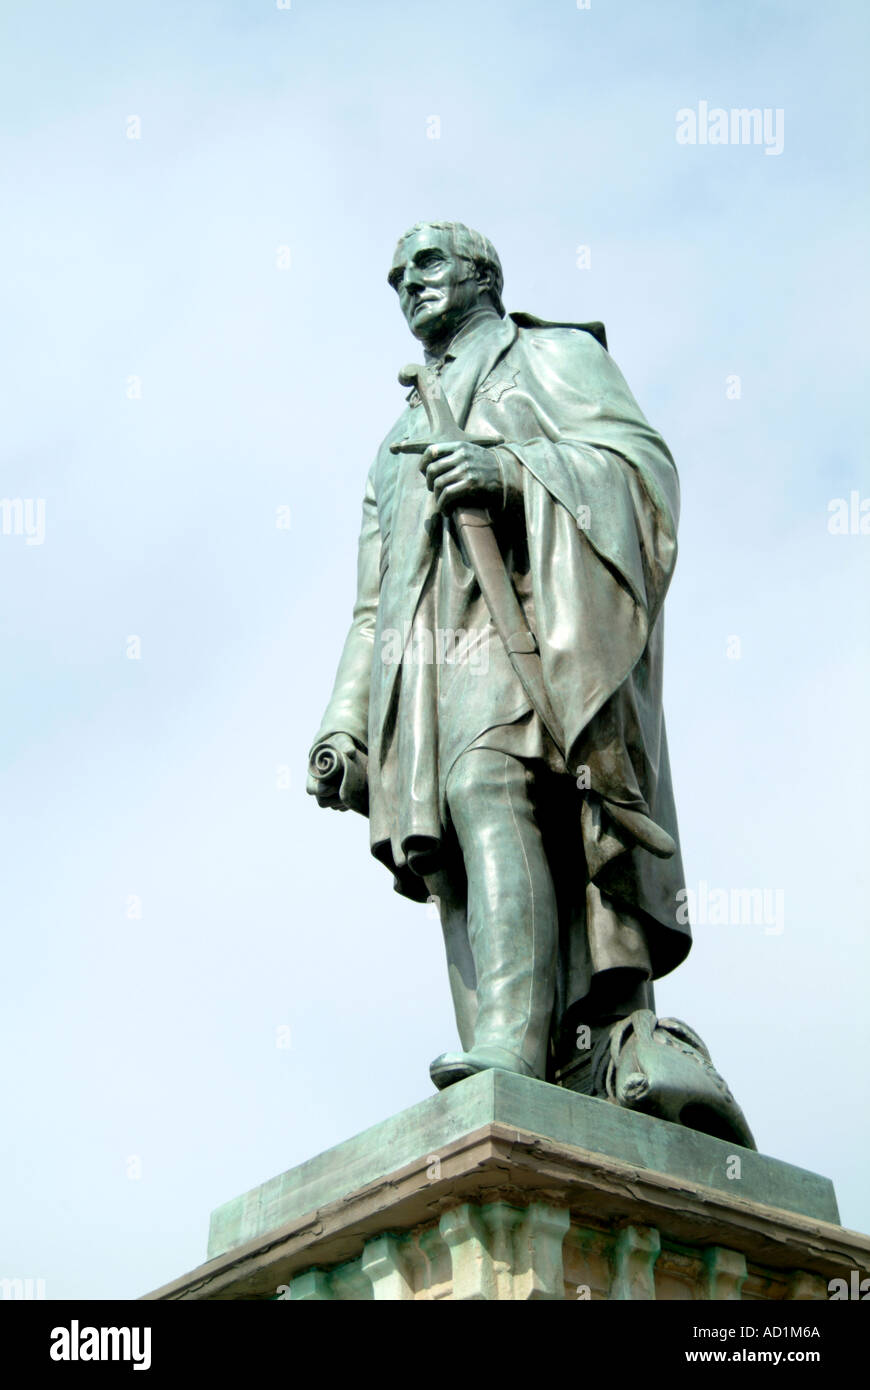 Statue of the Duke of Wellington Brecon Wales - Stock Image